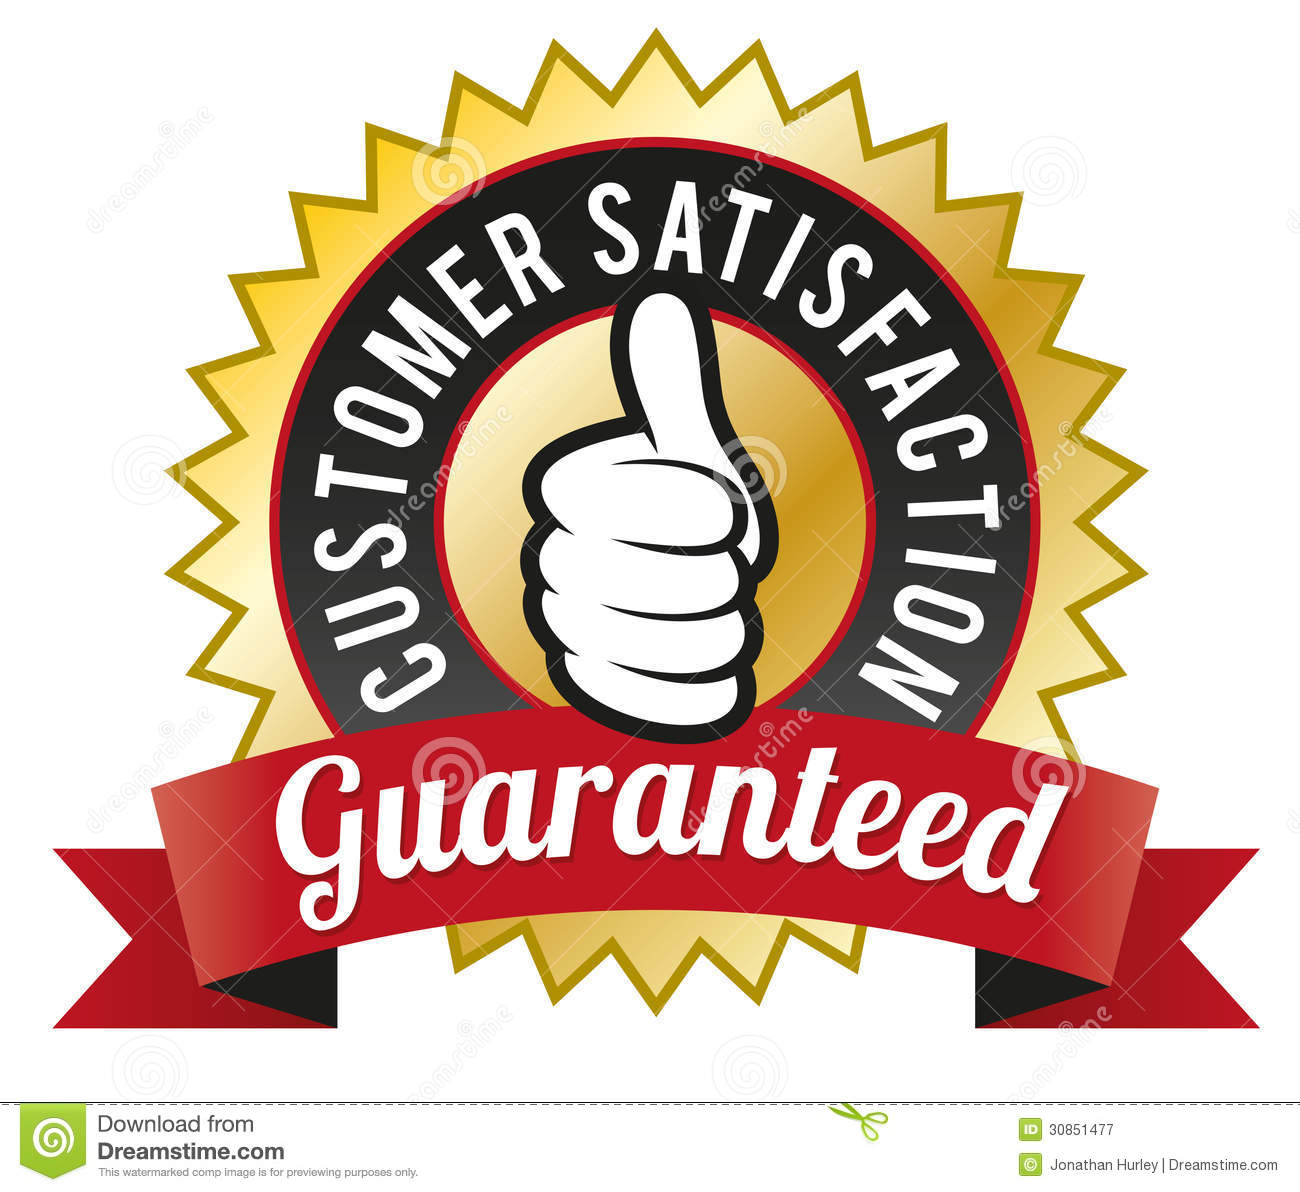 Satisfaction guaranteed clipart clipart Satisfaction Guaranteed | Clipart Panda - Free Clipart Images clipart